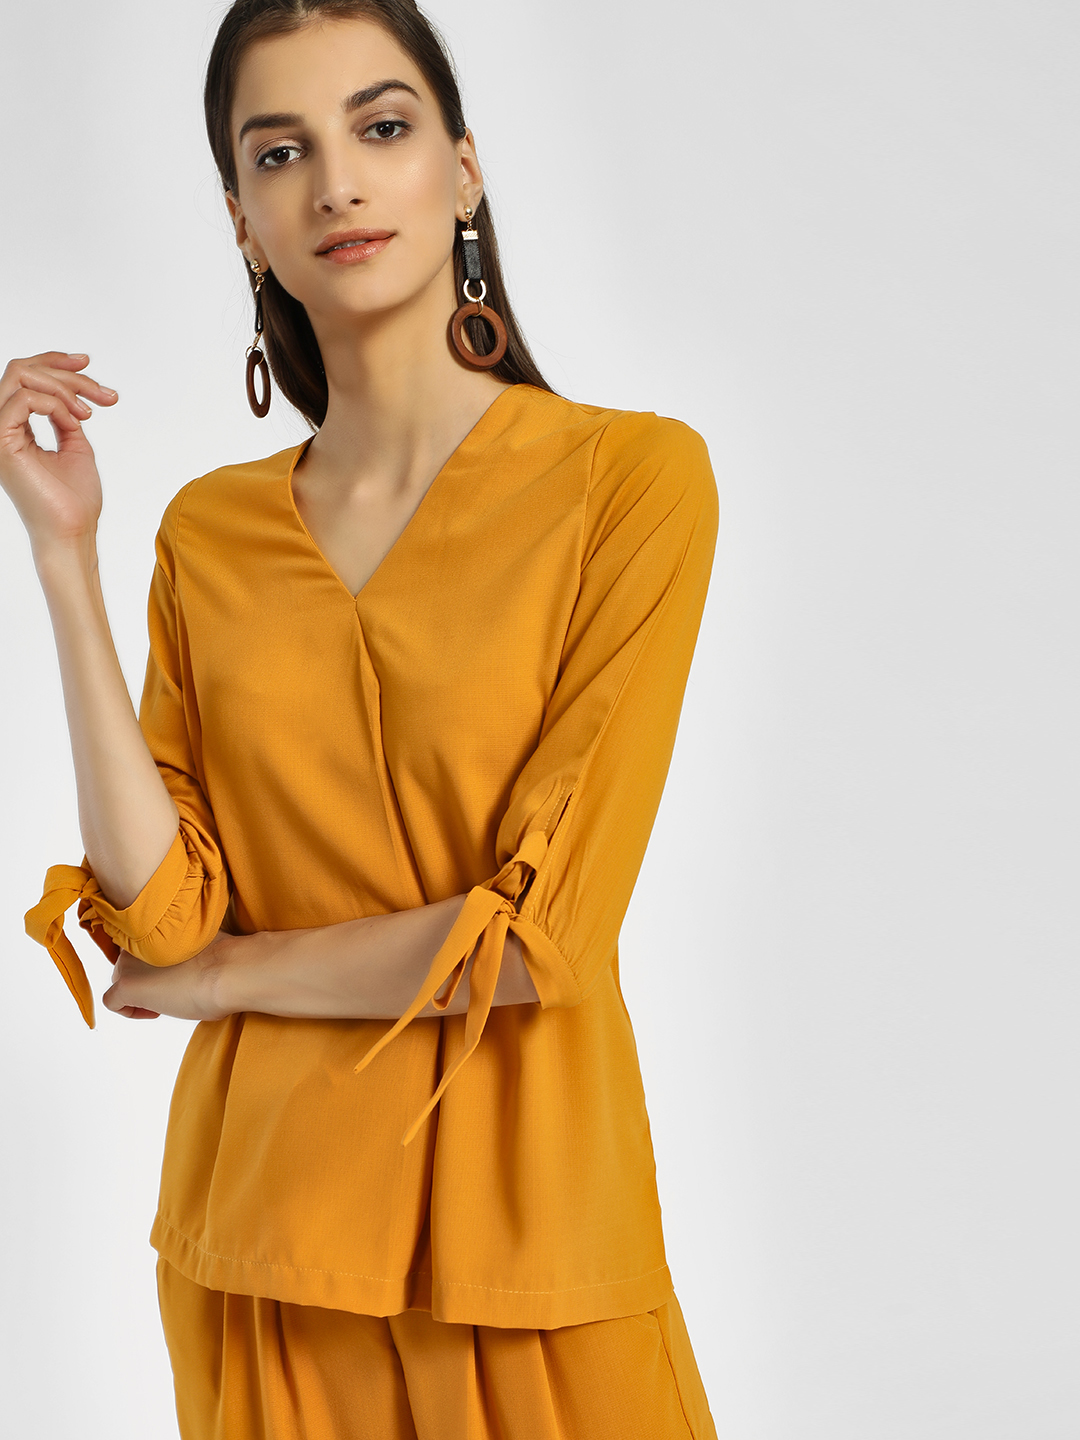 Miaminx Yellow V-Neck Sleeve Tie-Knot Blouse 1